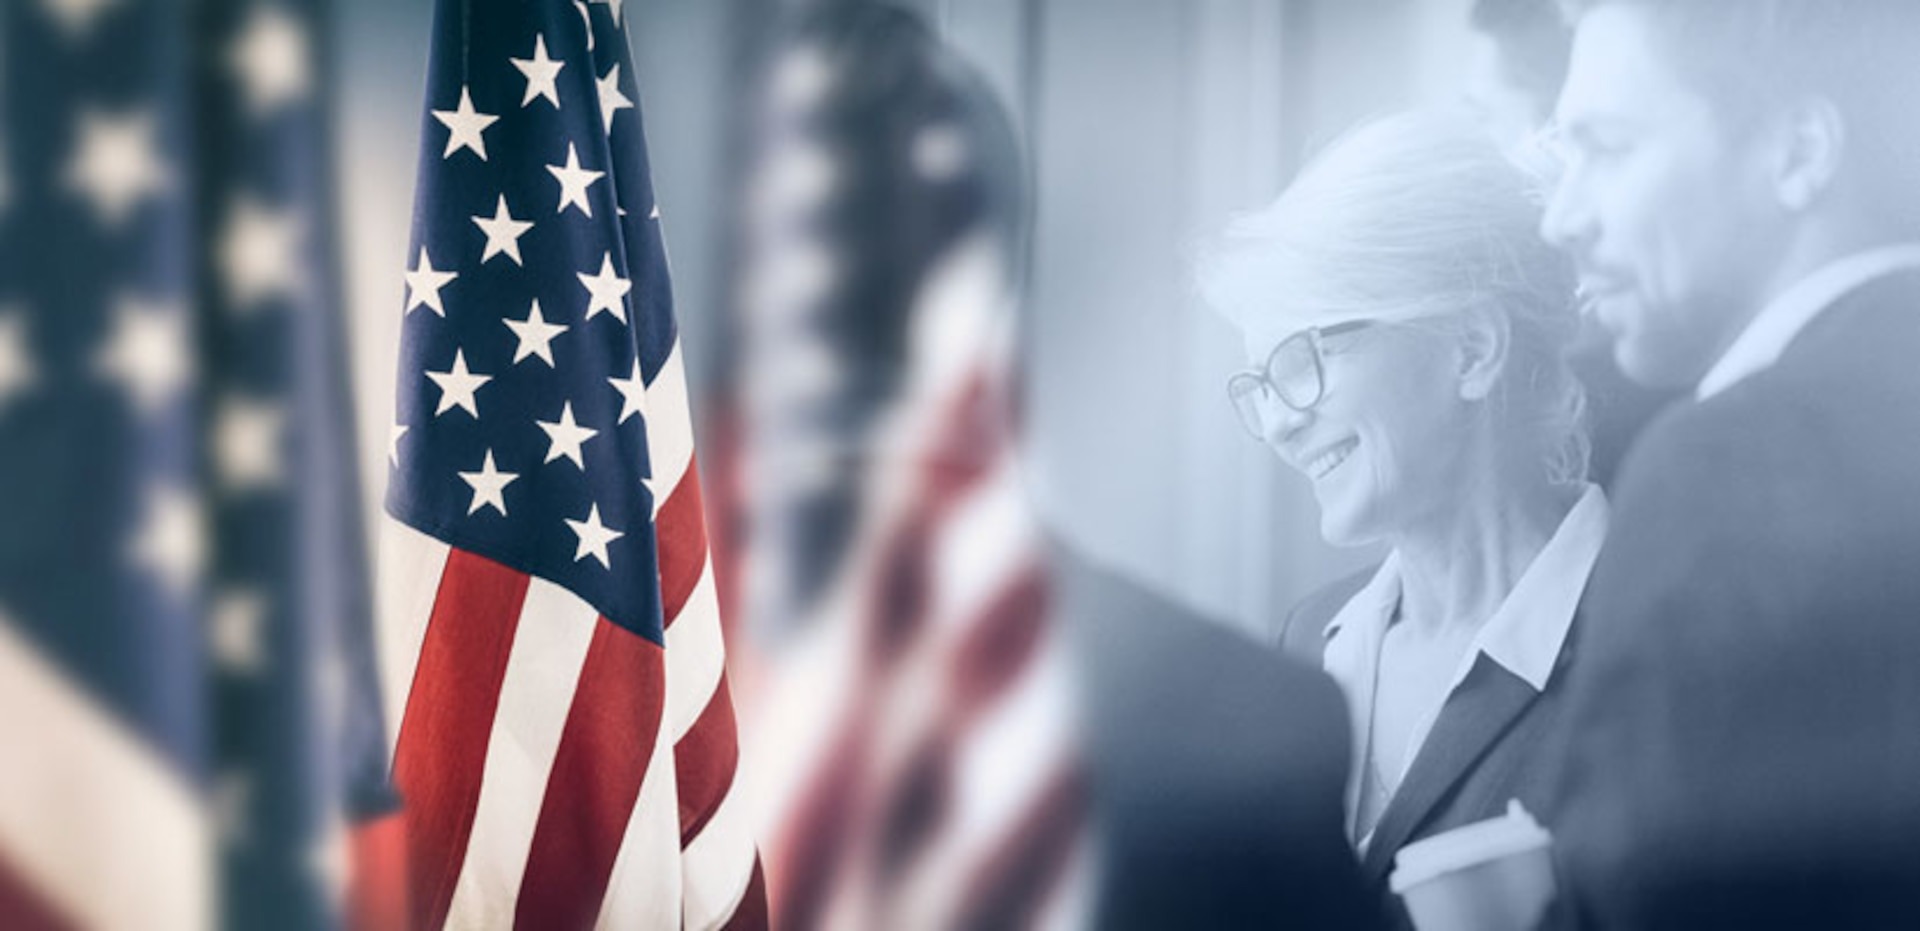 American flag inlaid over two business persons.